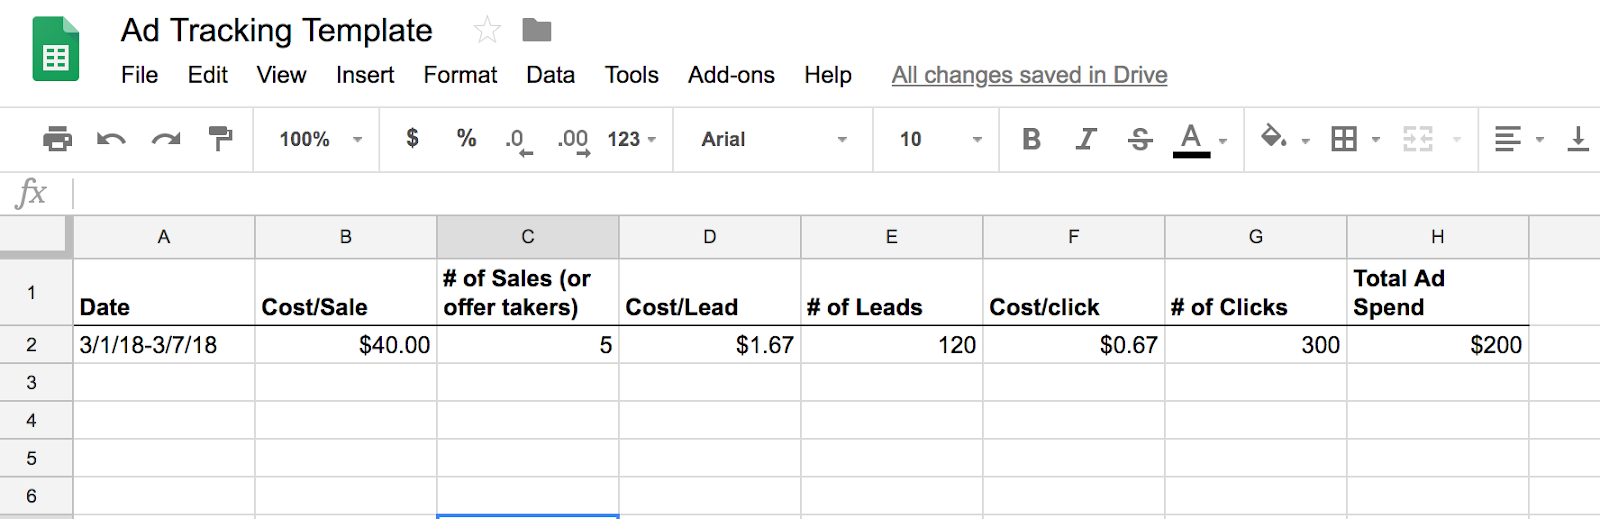 Ad Tracking Template Google Sheets